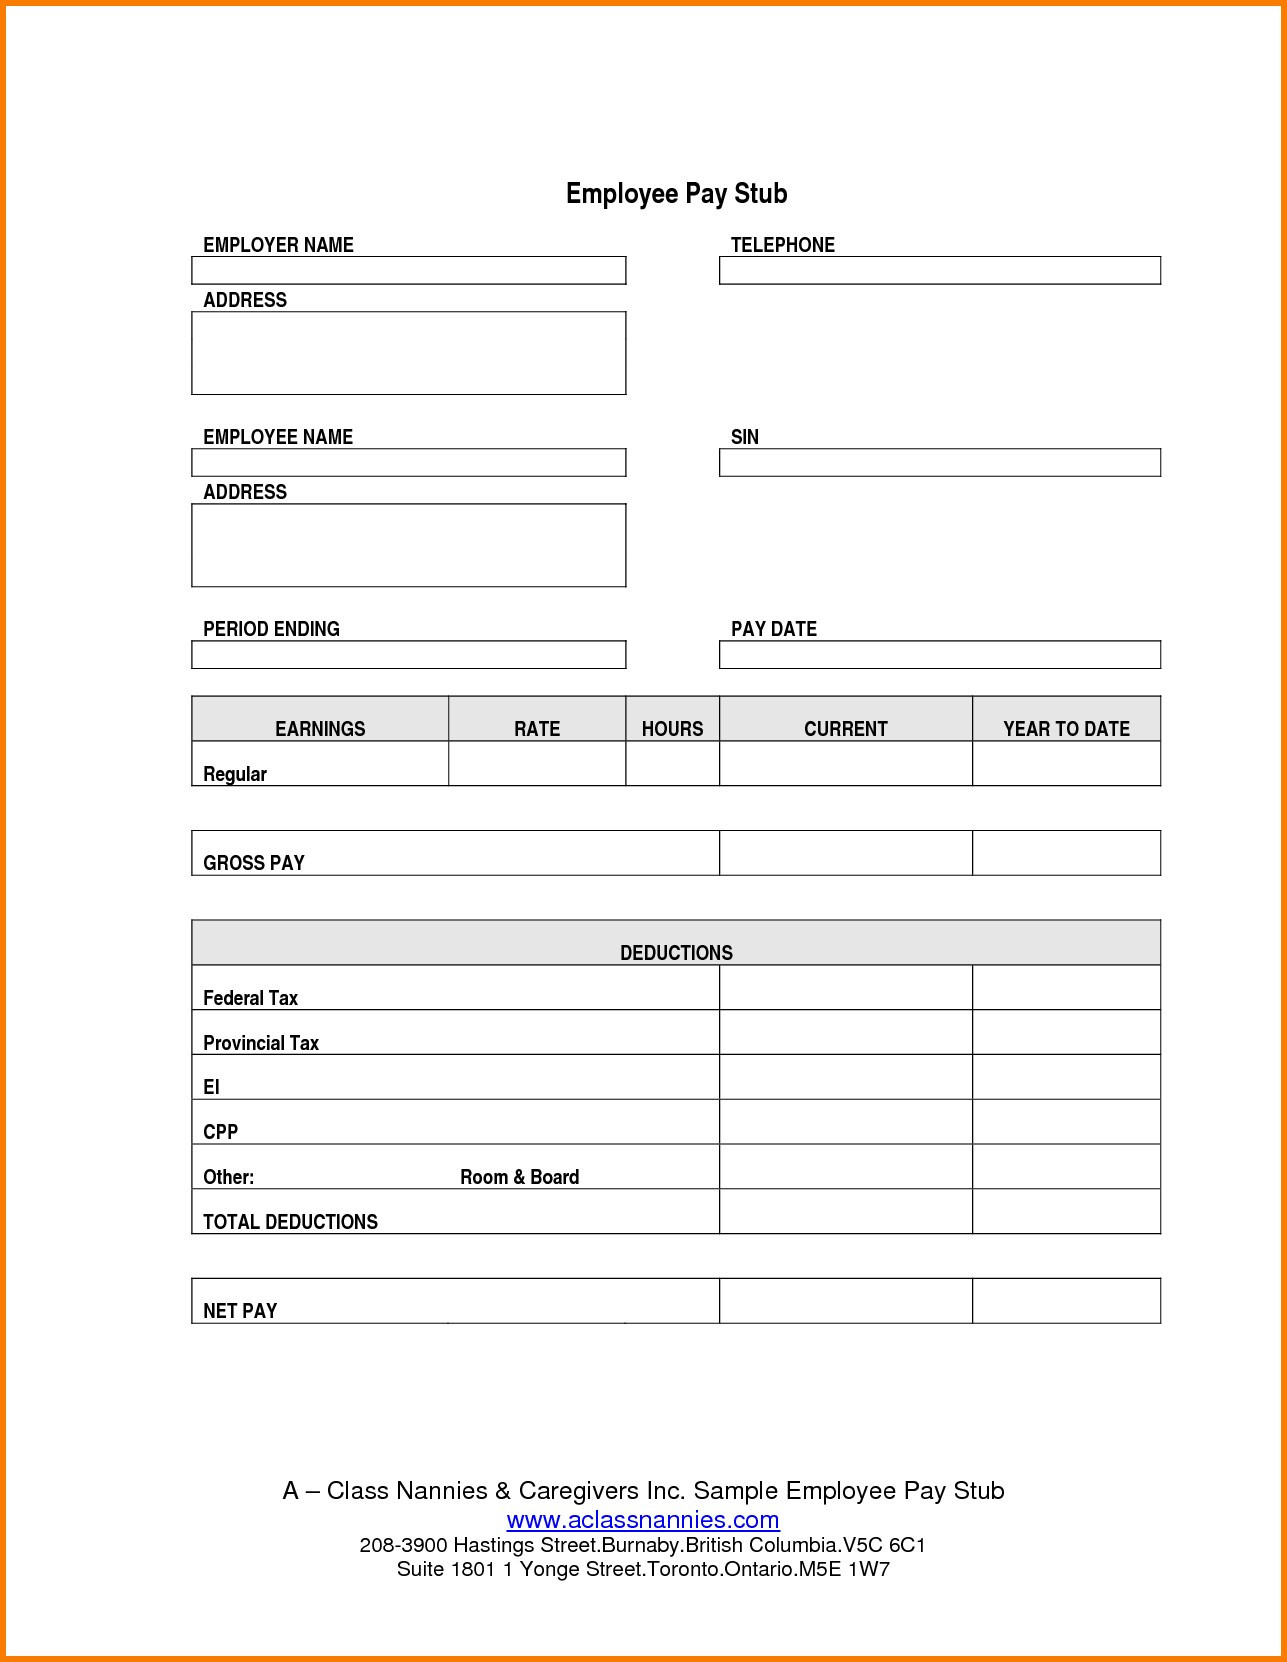 Adp Paystub Template Payroll Sheet Editable Free Printable Check - Free Printable Pay Stubs Online